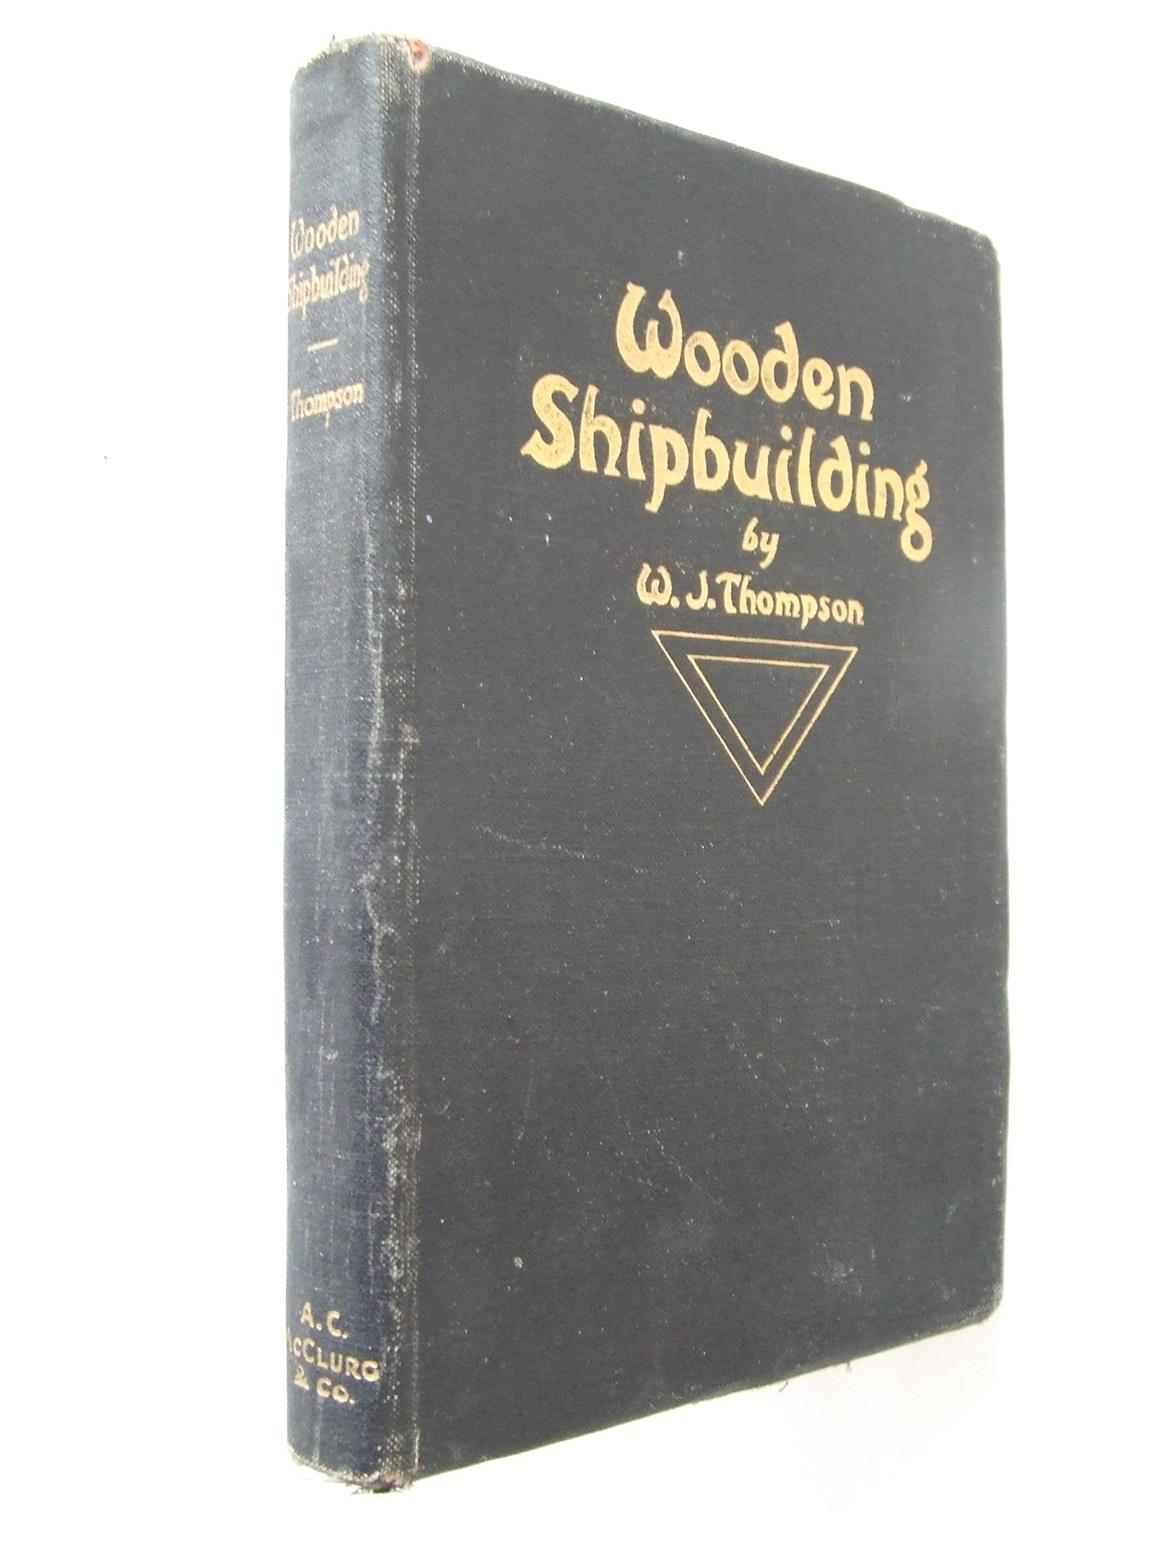 Wooden Shipbuilding, a comprehensive manual for wooden shipbuilders